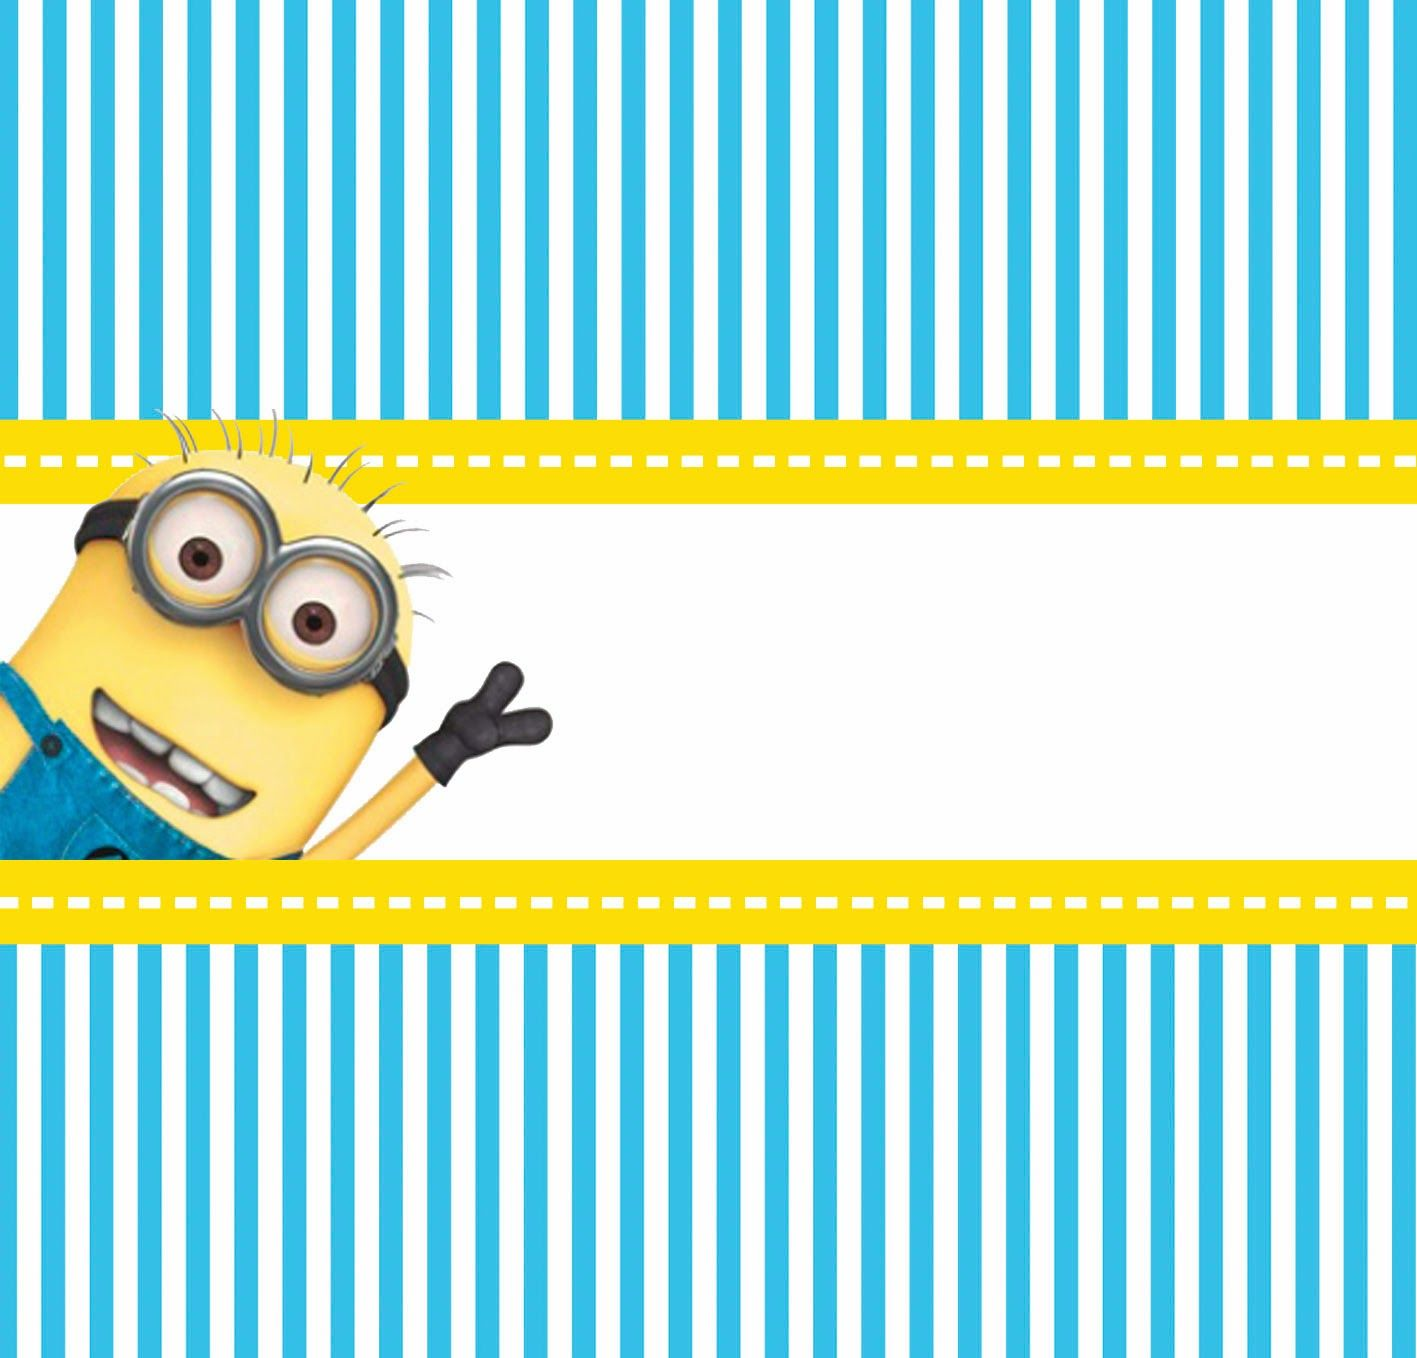 Despicable Me Free Printable Candy Bar Labels. | Oh My Fiesta! in ...